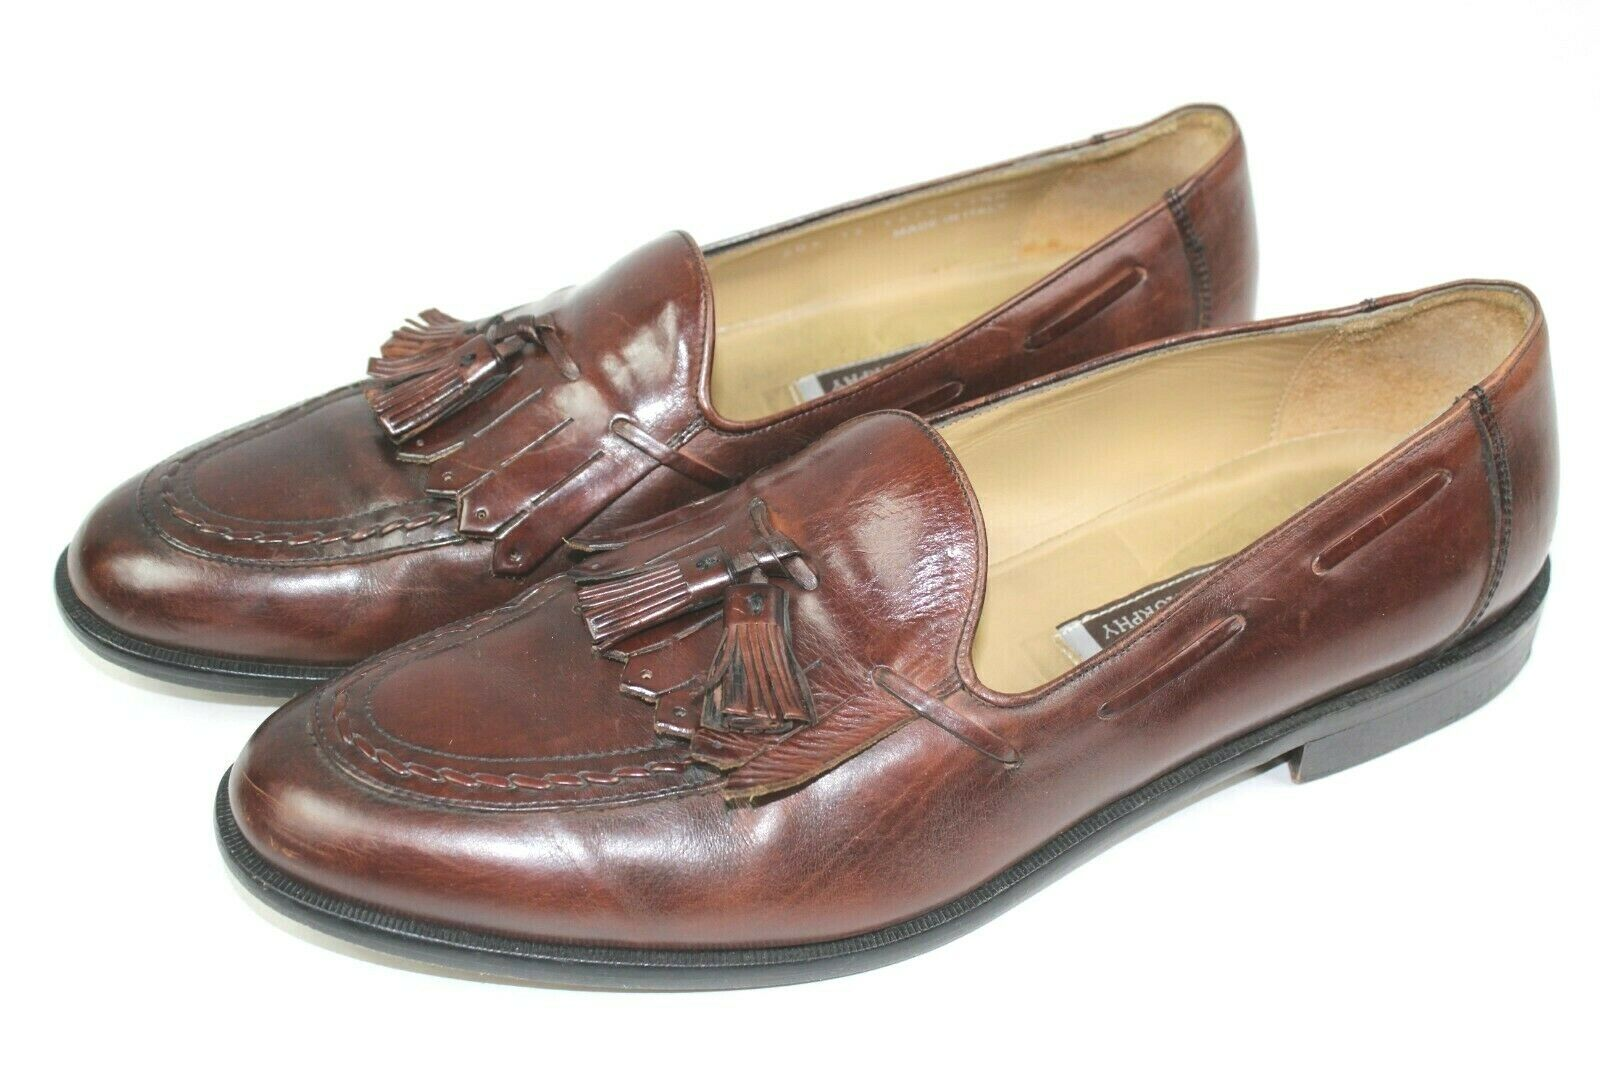 Johnston and Murphy mens leather dress shoes size 11.5 dark brown loafers